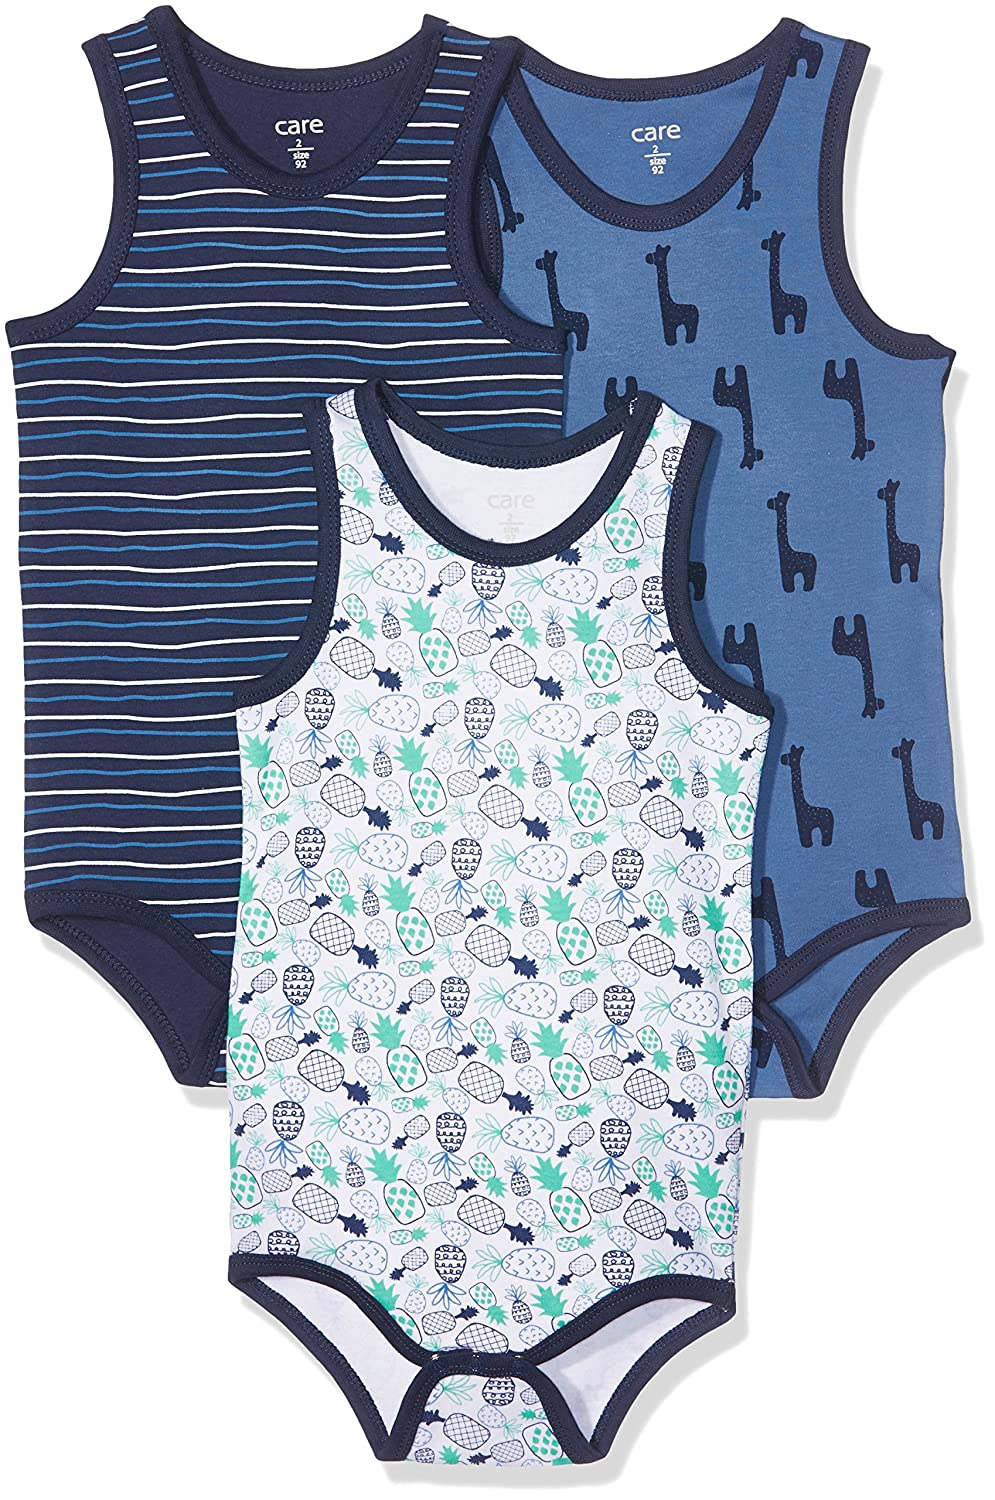 Care Baby Boys Bodysuit, Sleeveless, 3-Pack 4134